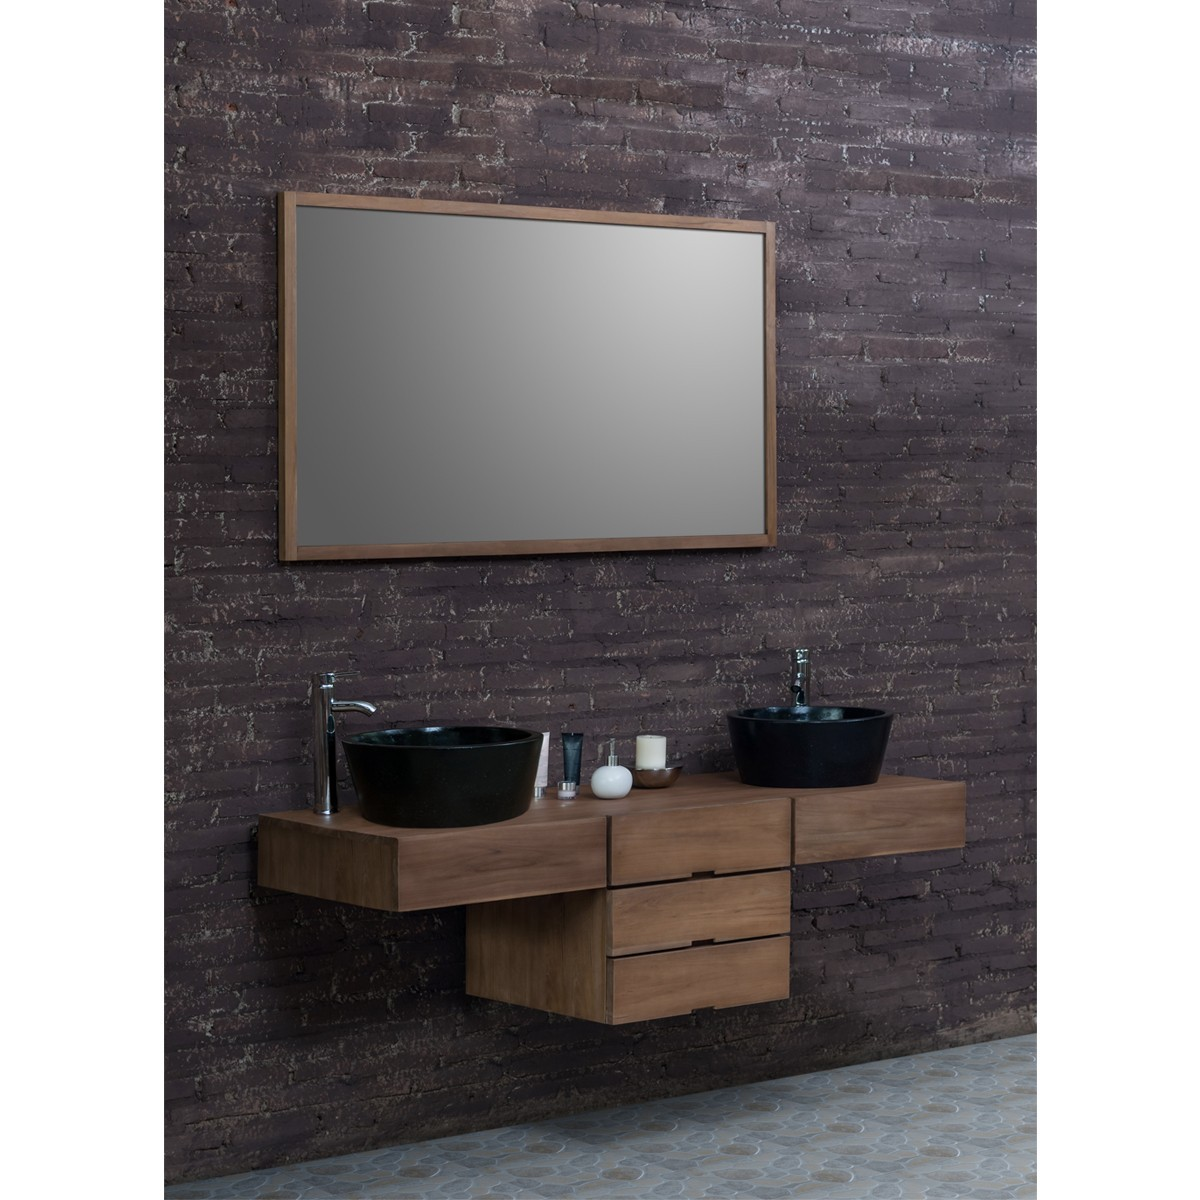 ensemble de salle de bain en bois de teck meuble de salle de bain teck 160 2 vasques. Black Bedroom Furniture Sets. Home Design Ideas